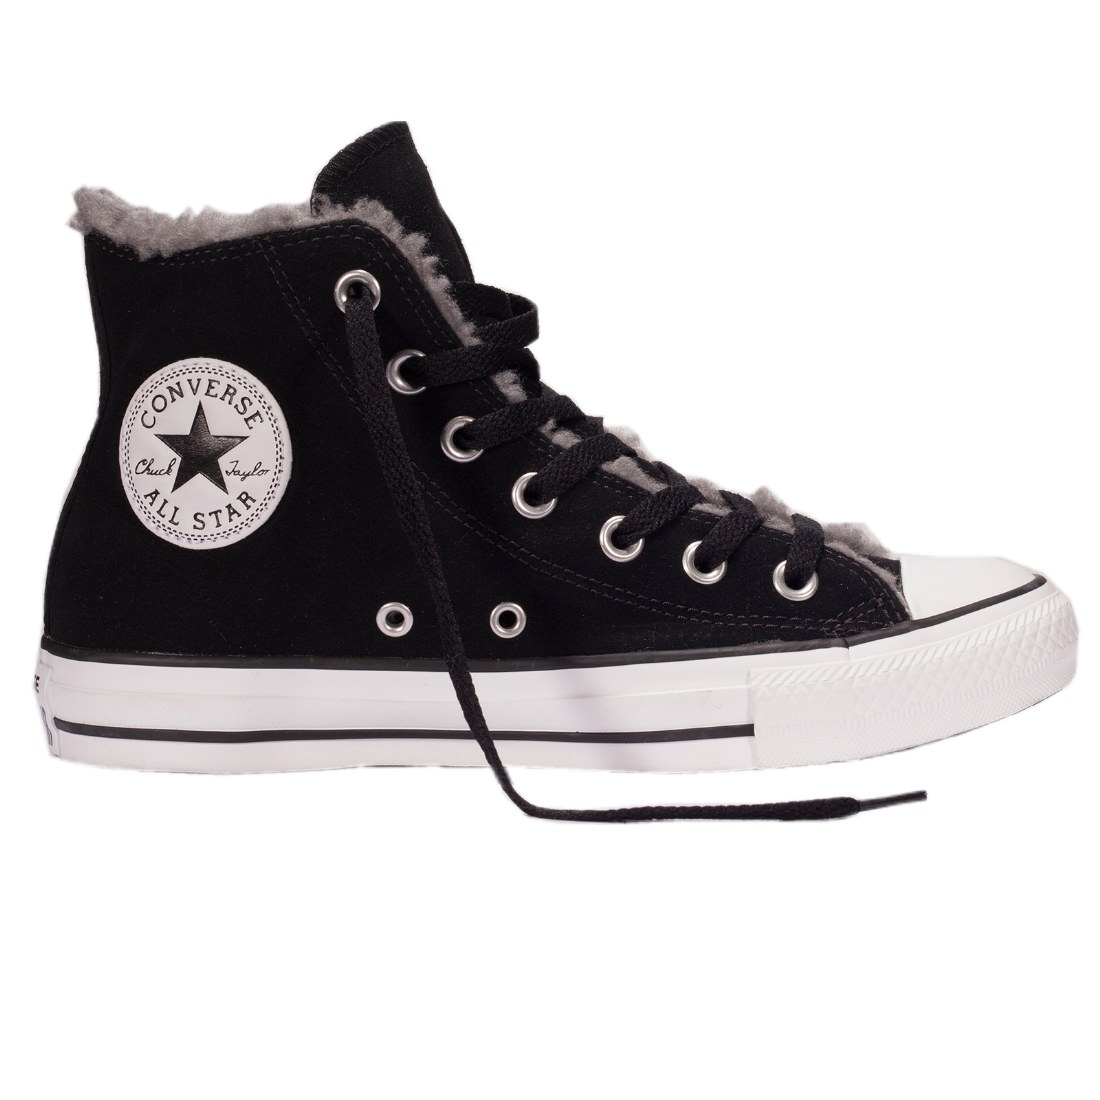 converse chuck taylor as hi schuhe sneaker winterschuhe. Black Bedroom Furniture Sets. Home Design Ideas